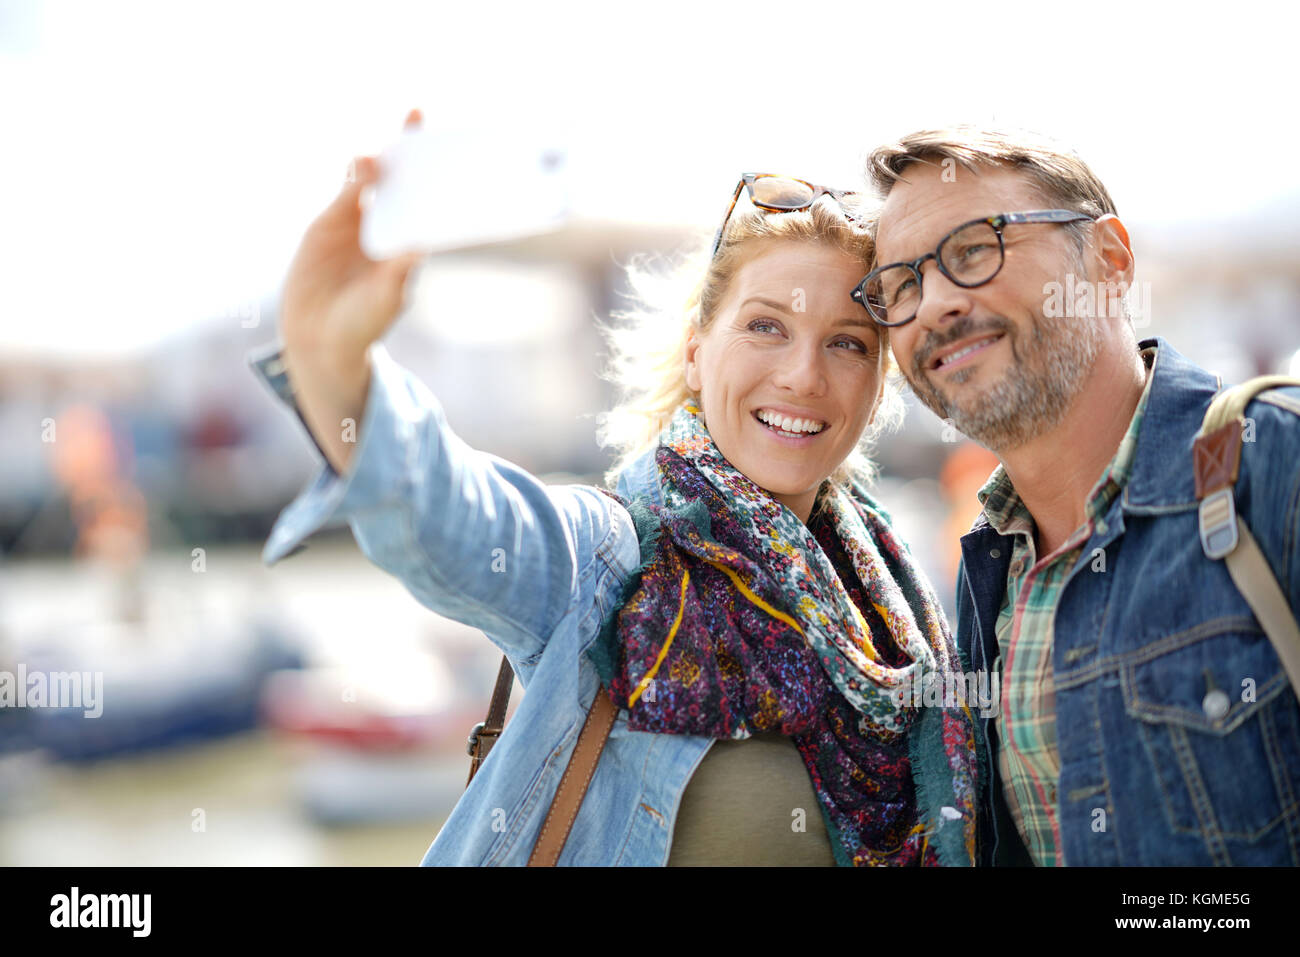 Couple of tourists on vacation taking selfie picture with smartphone - Stock Image